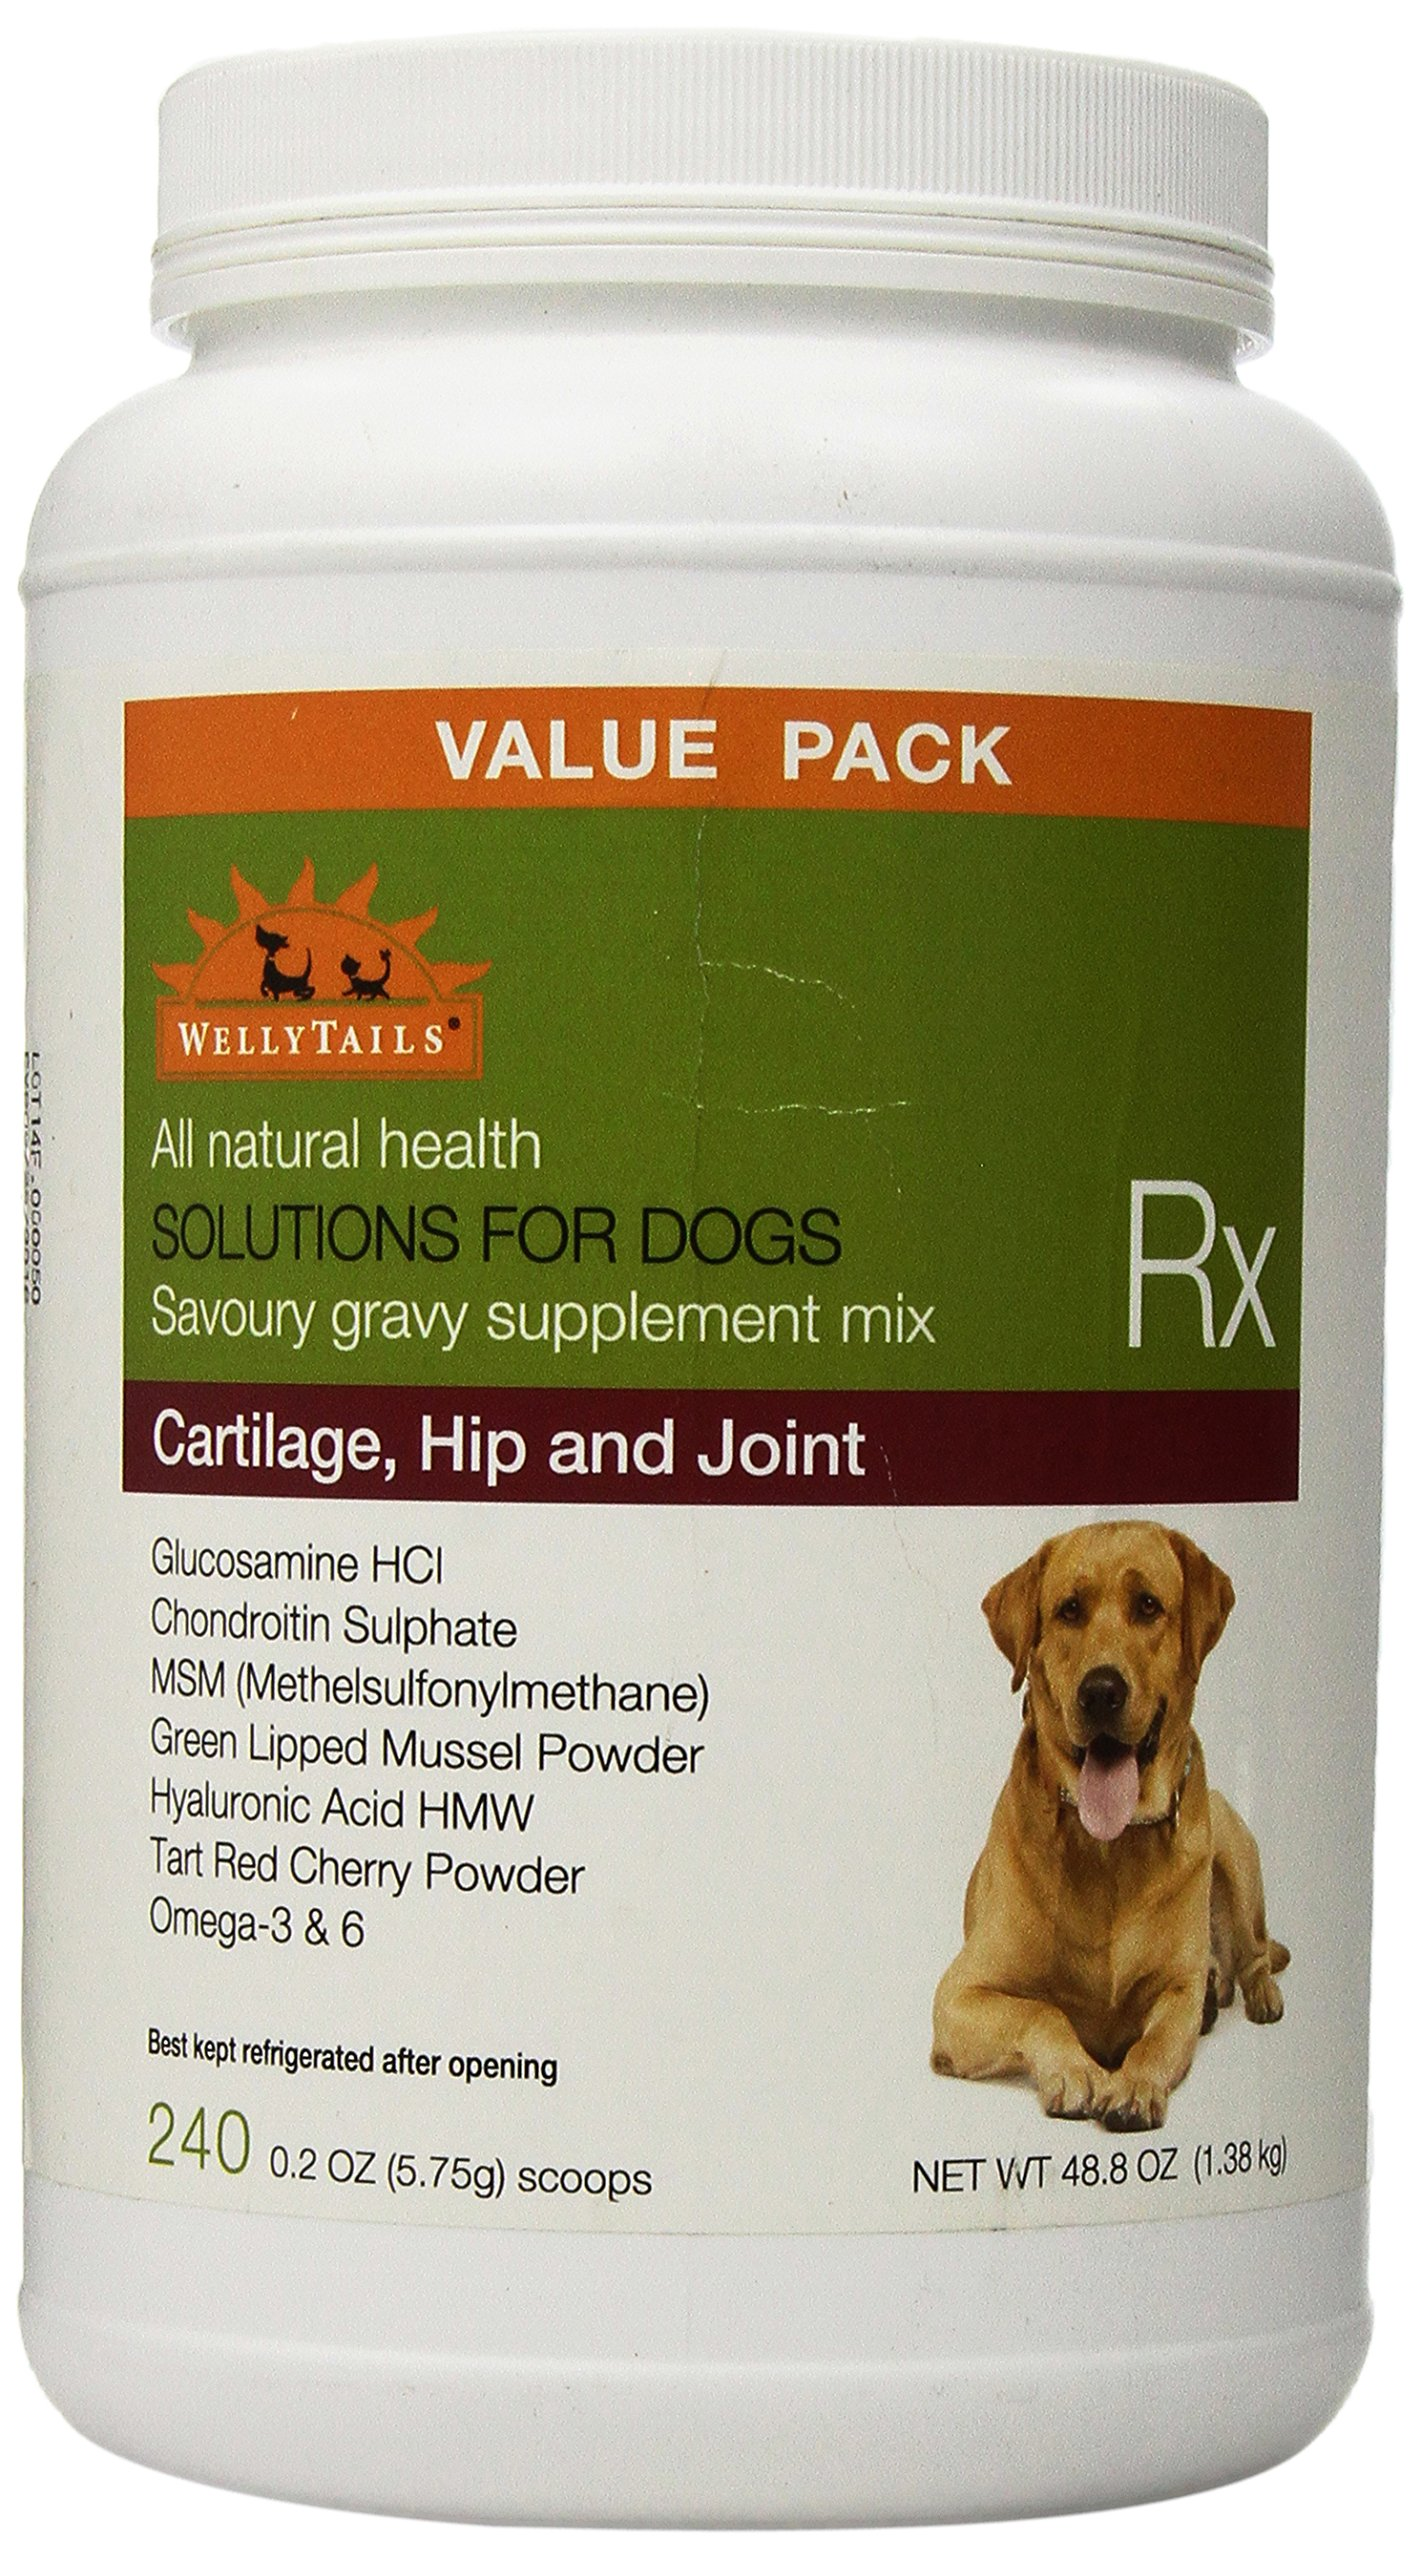 WellyTails Cartilage Hip and Joint Rx Dog Supplement for Joint, 1384gm